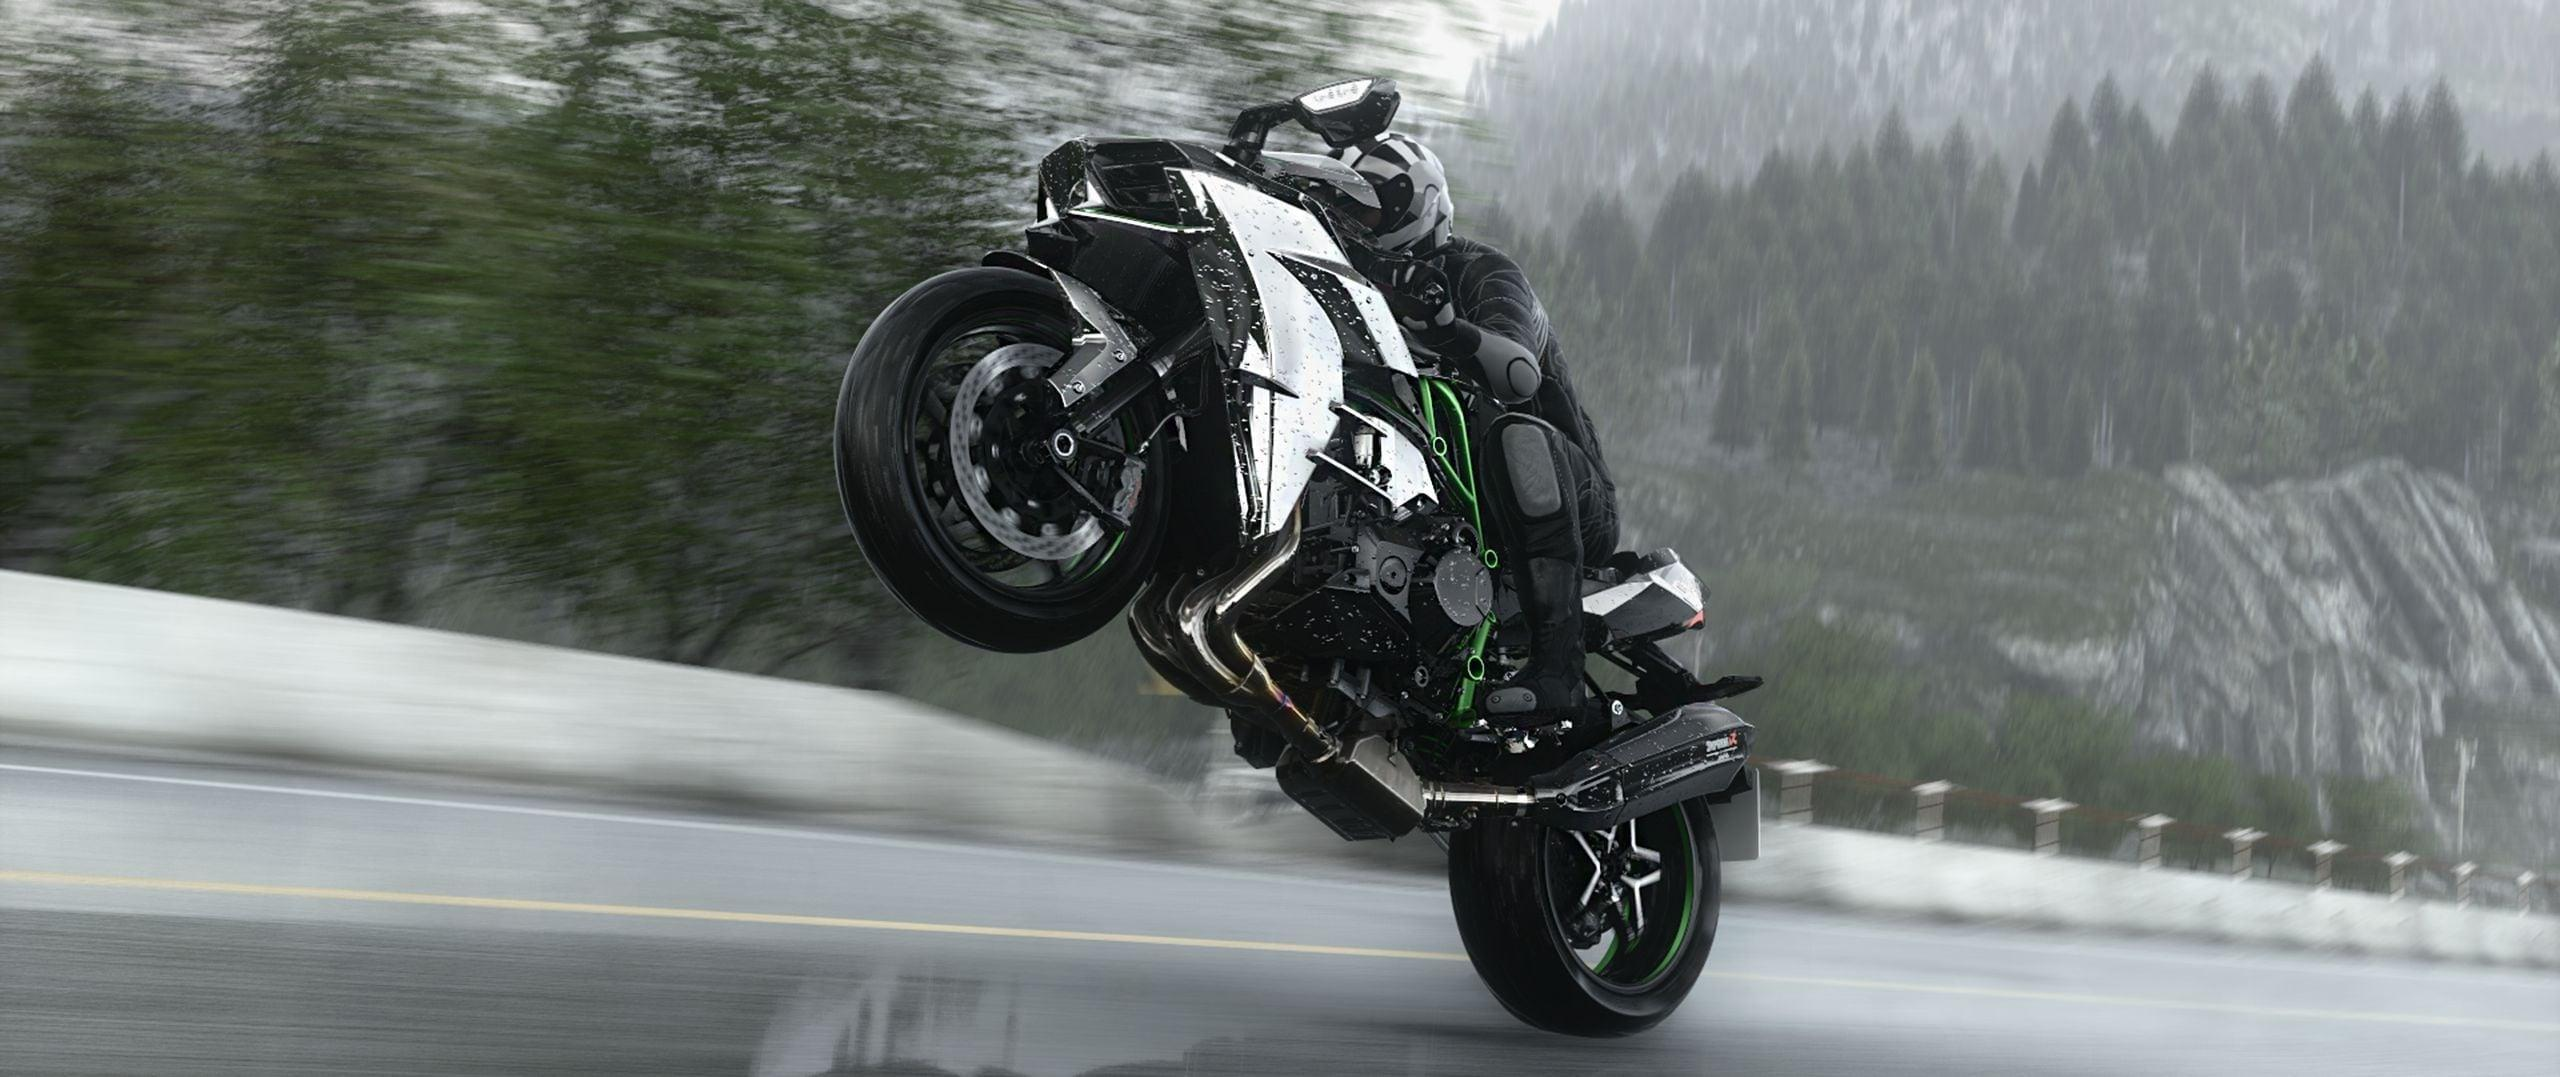 The Ninja H2r Wallpapers Wallpaper Cave